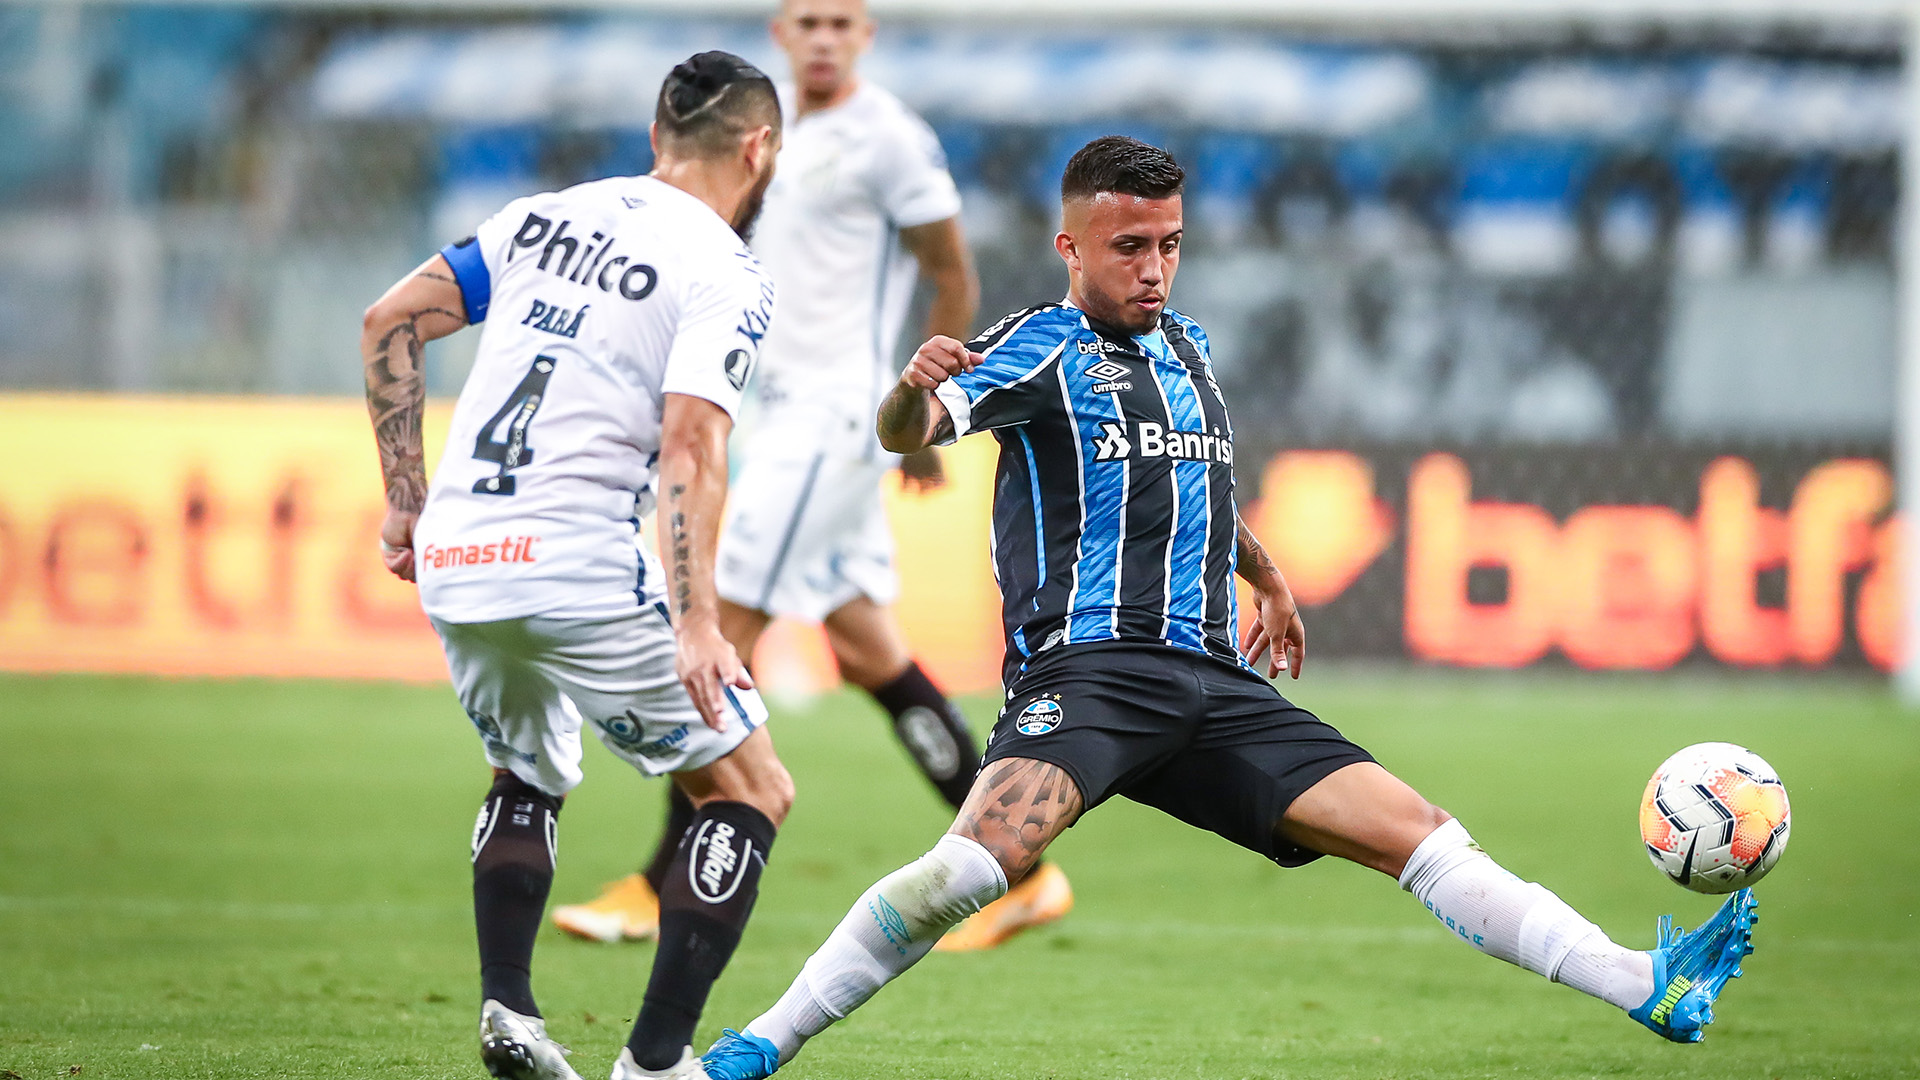 Santos vs Gremio on US TV: How to watch and live stream CONMEBOL Copa Libertadores